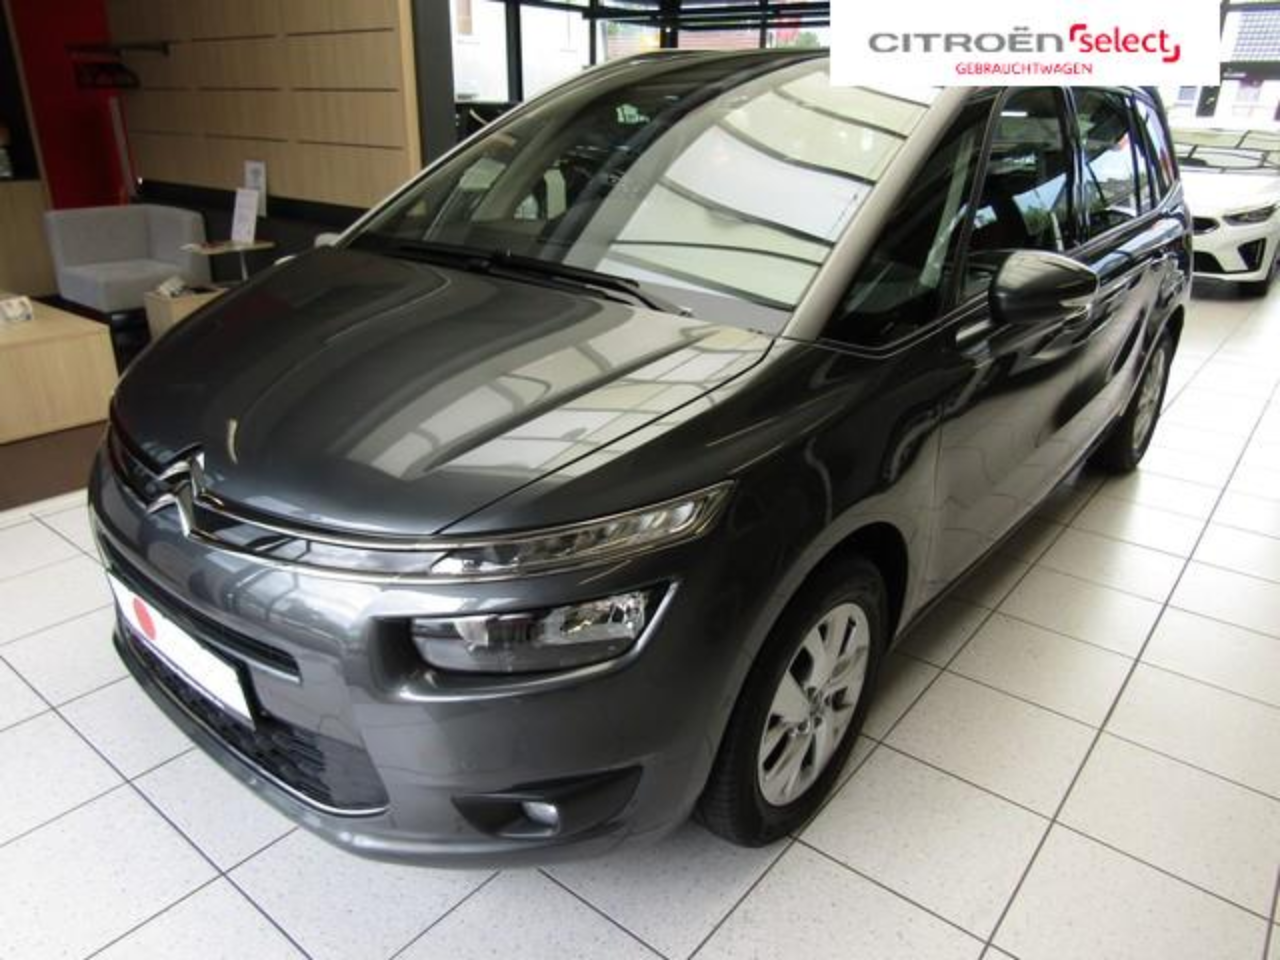 Citroën Grand C4 Picasso 1.2 PureTech 130 Selection